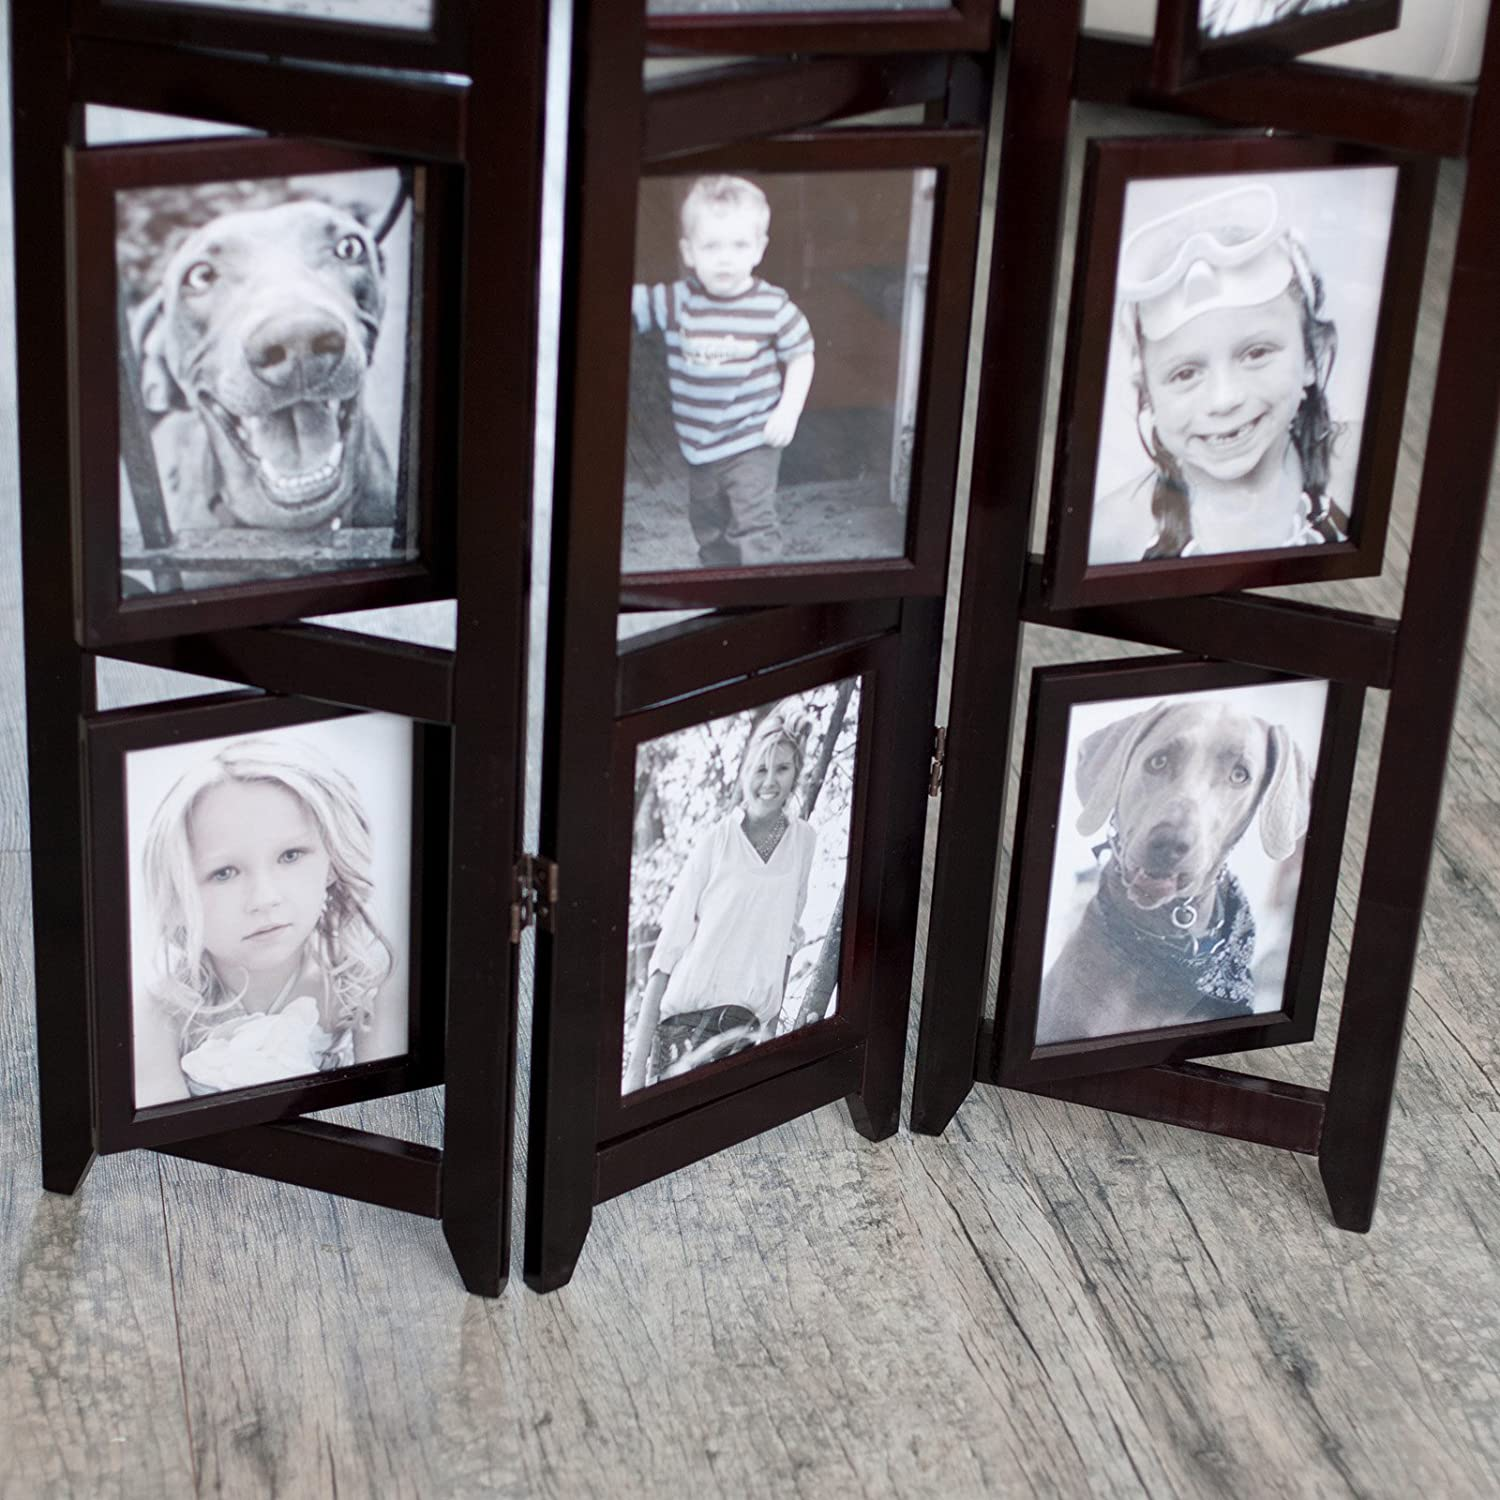 Amazon.com: Memories Double Sided Photo Frame Room Divider ...